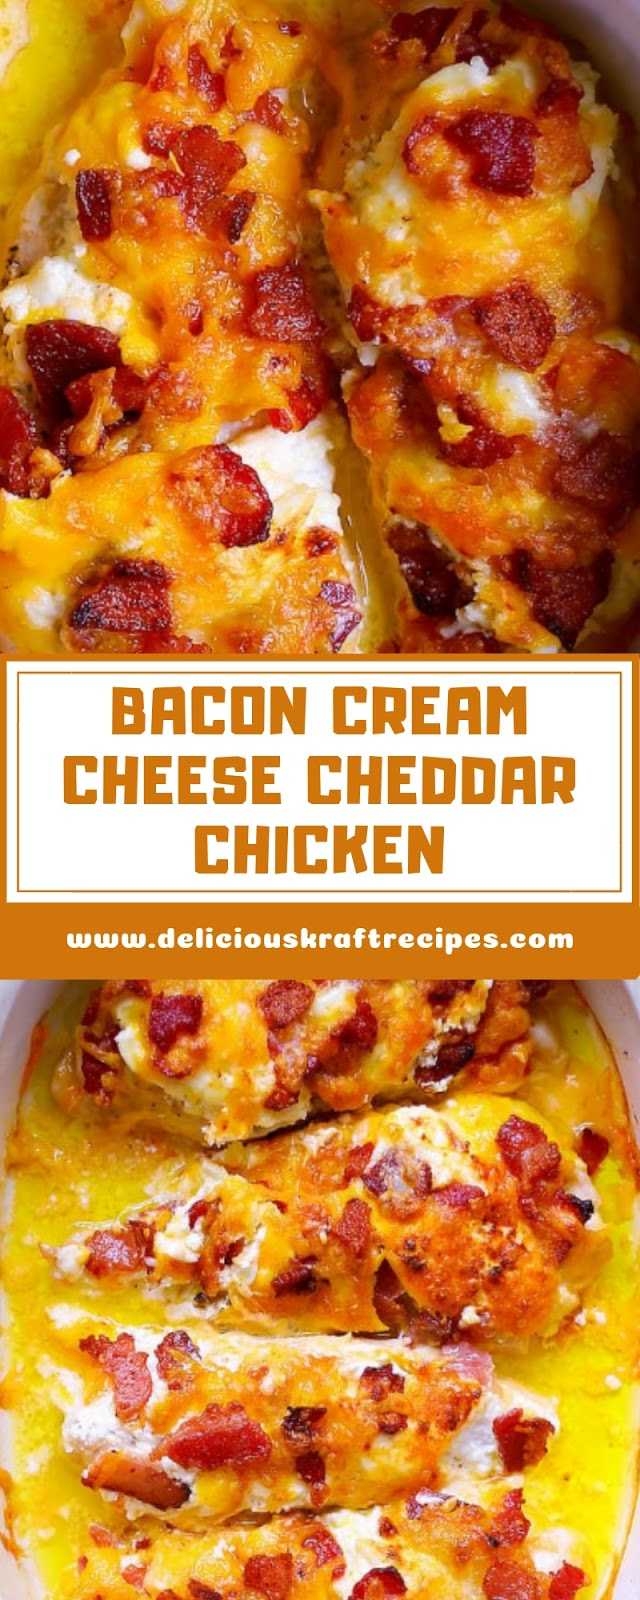 BACON CREAM CHEESE CHEDDAR CHICKEN